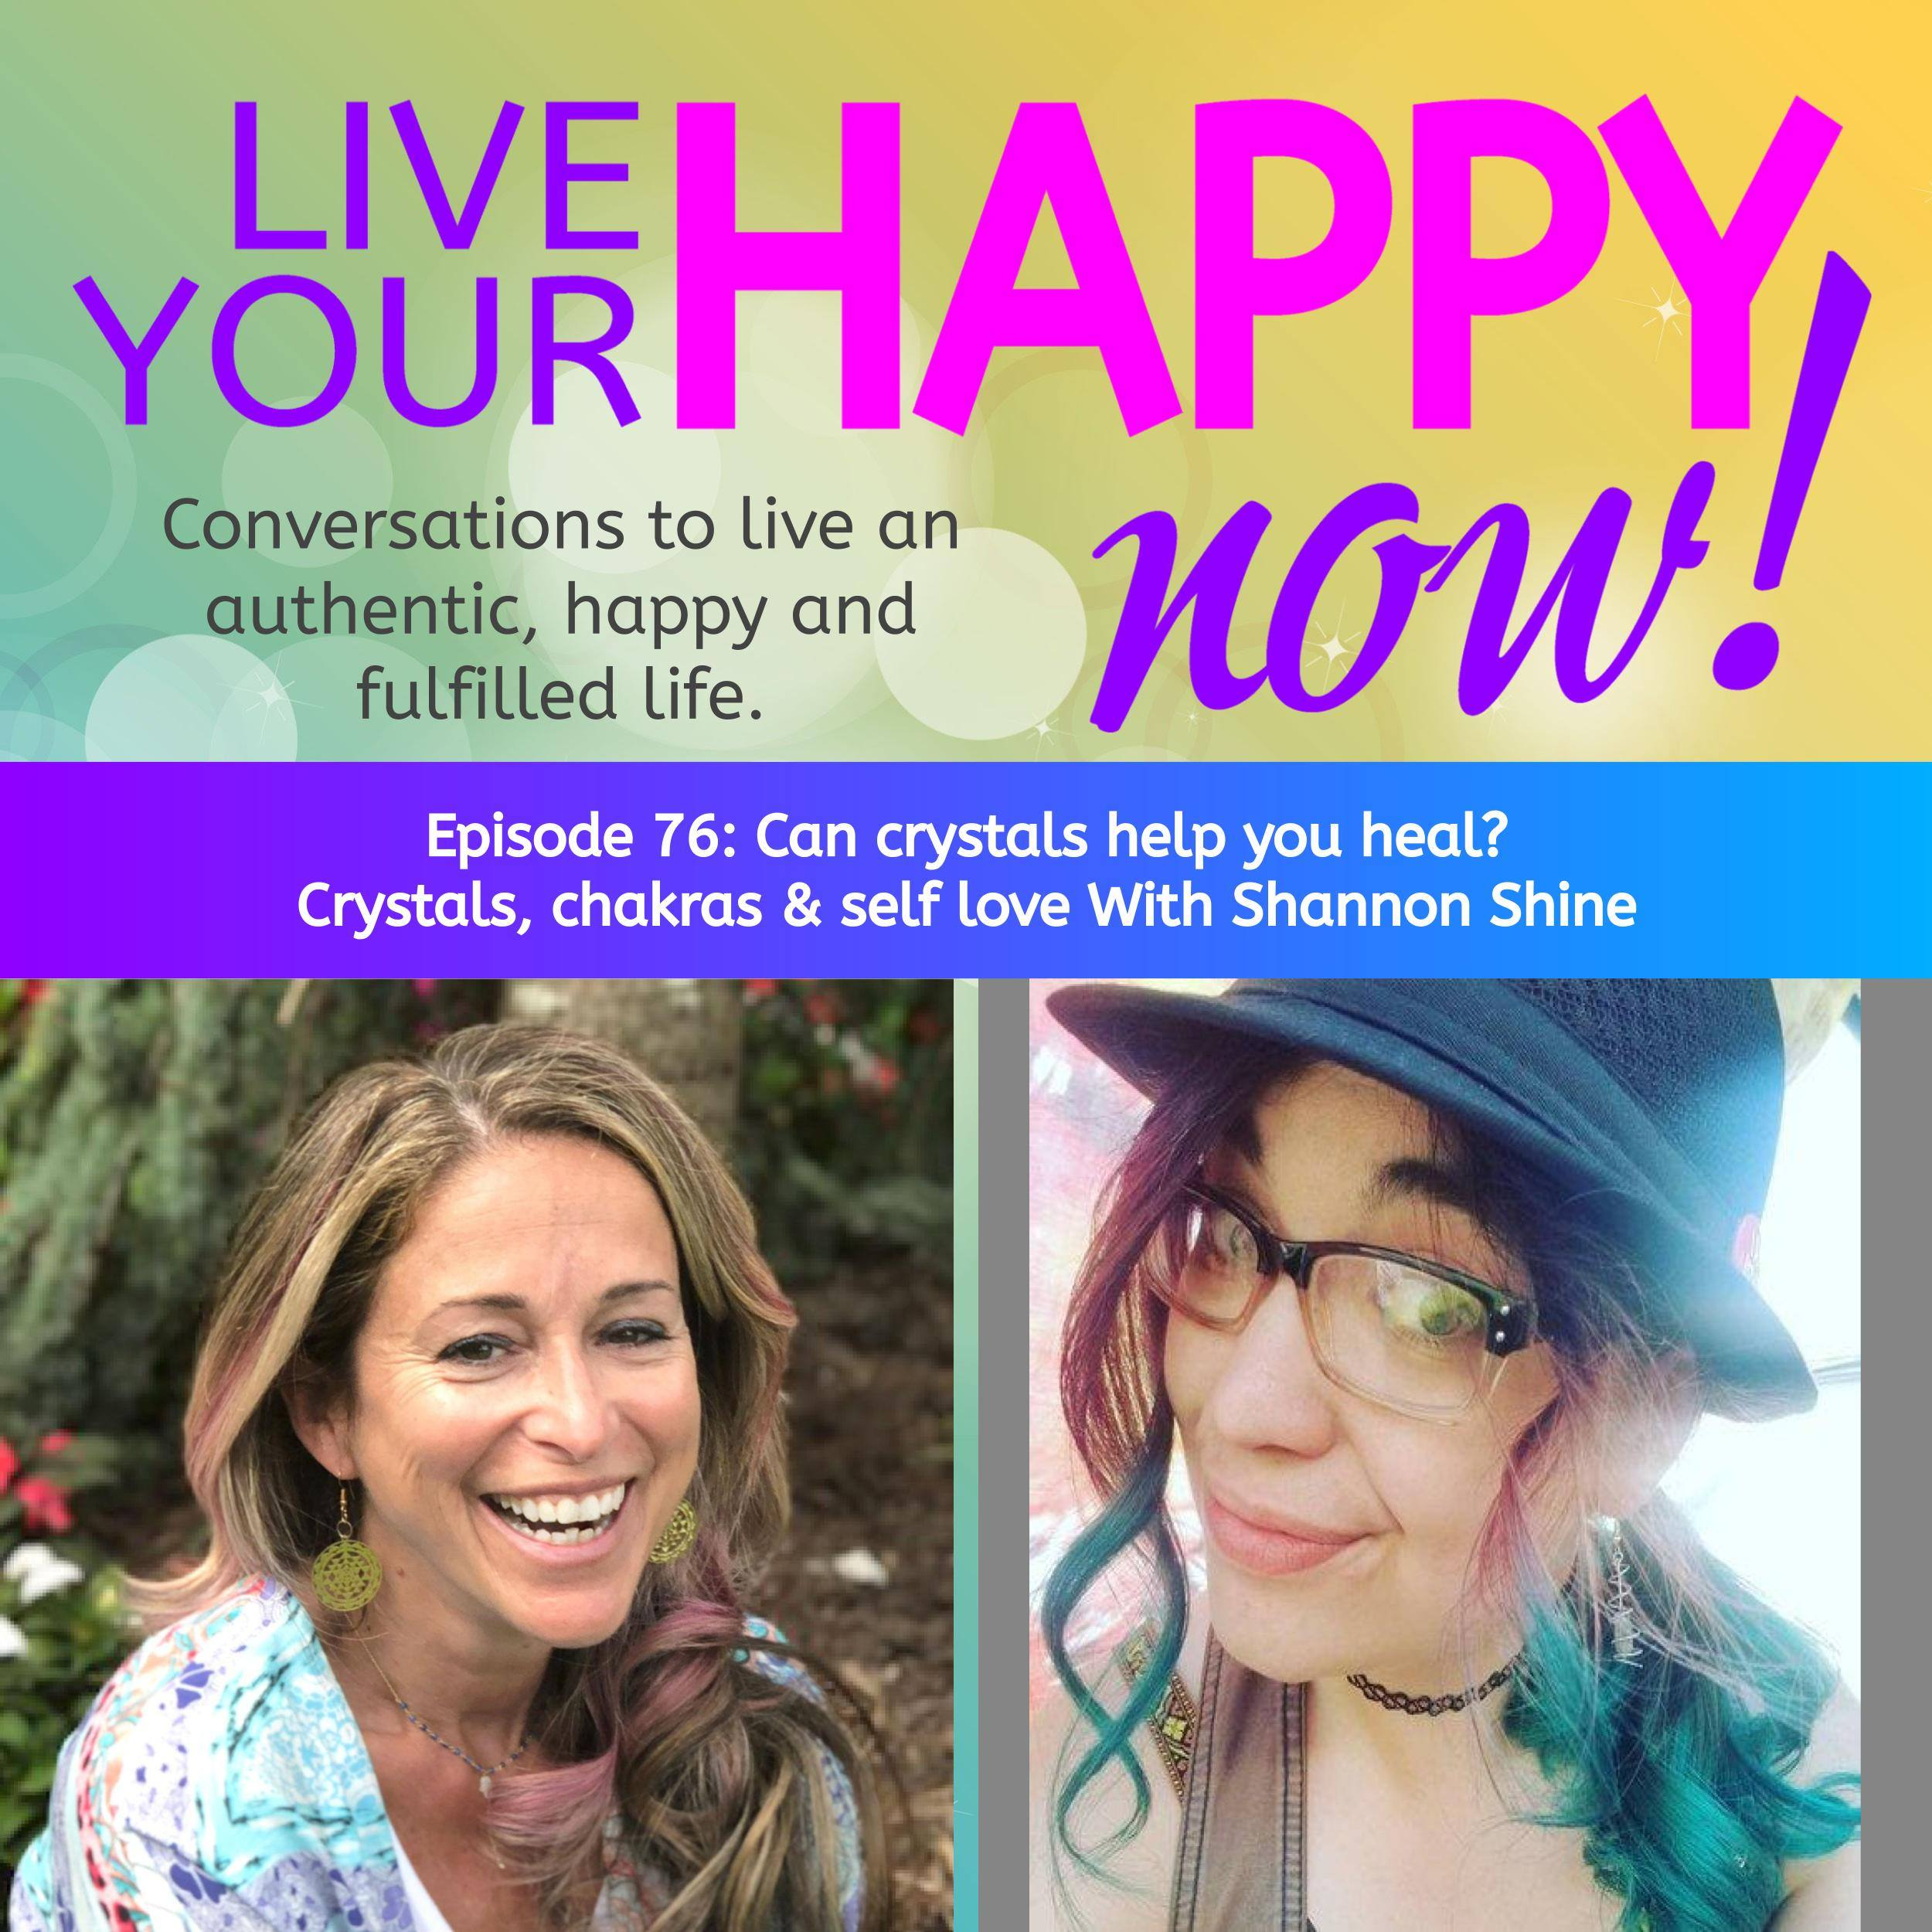 A discussion with Veronica - In this podcast we discuss:How can you connect to source in a different way?What can we learn from Millennials?What are crystals?How can you use crystals in your life?What would it take for you to love yourself & experience more joy?